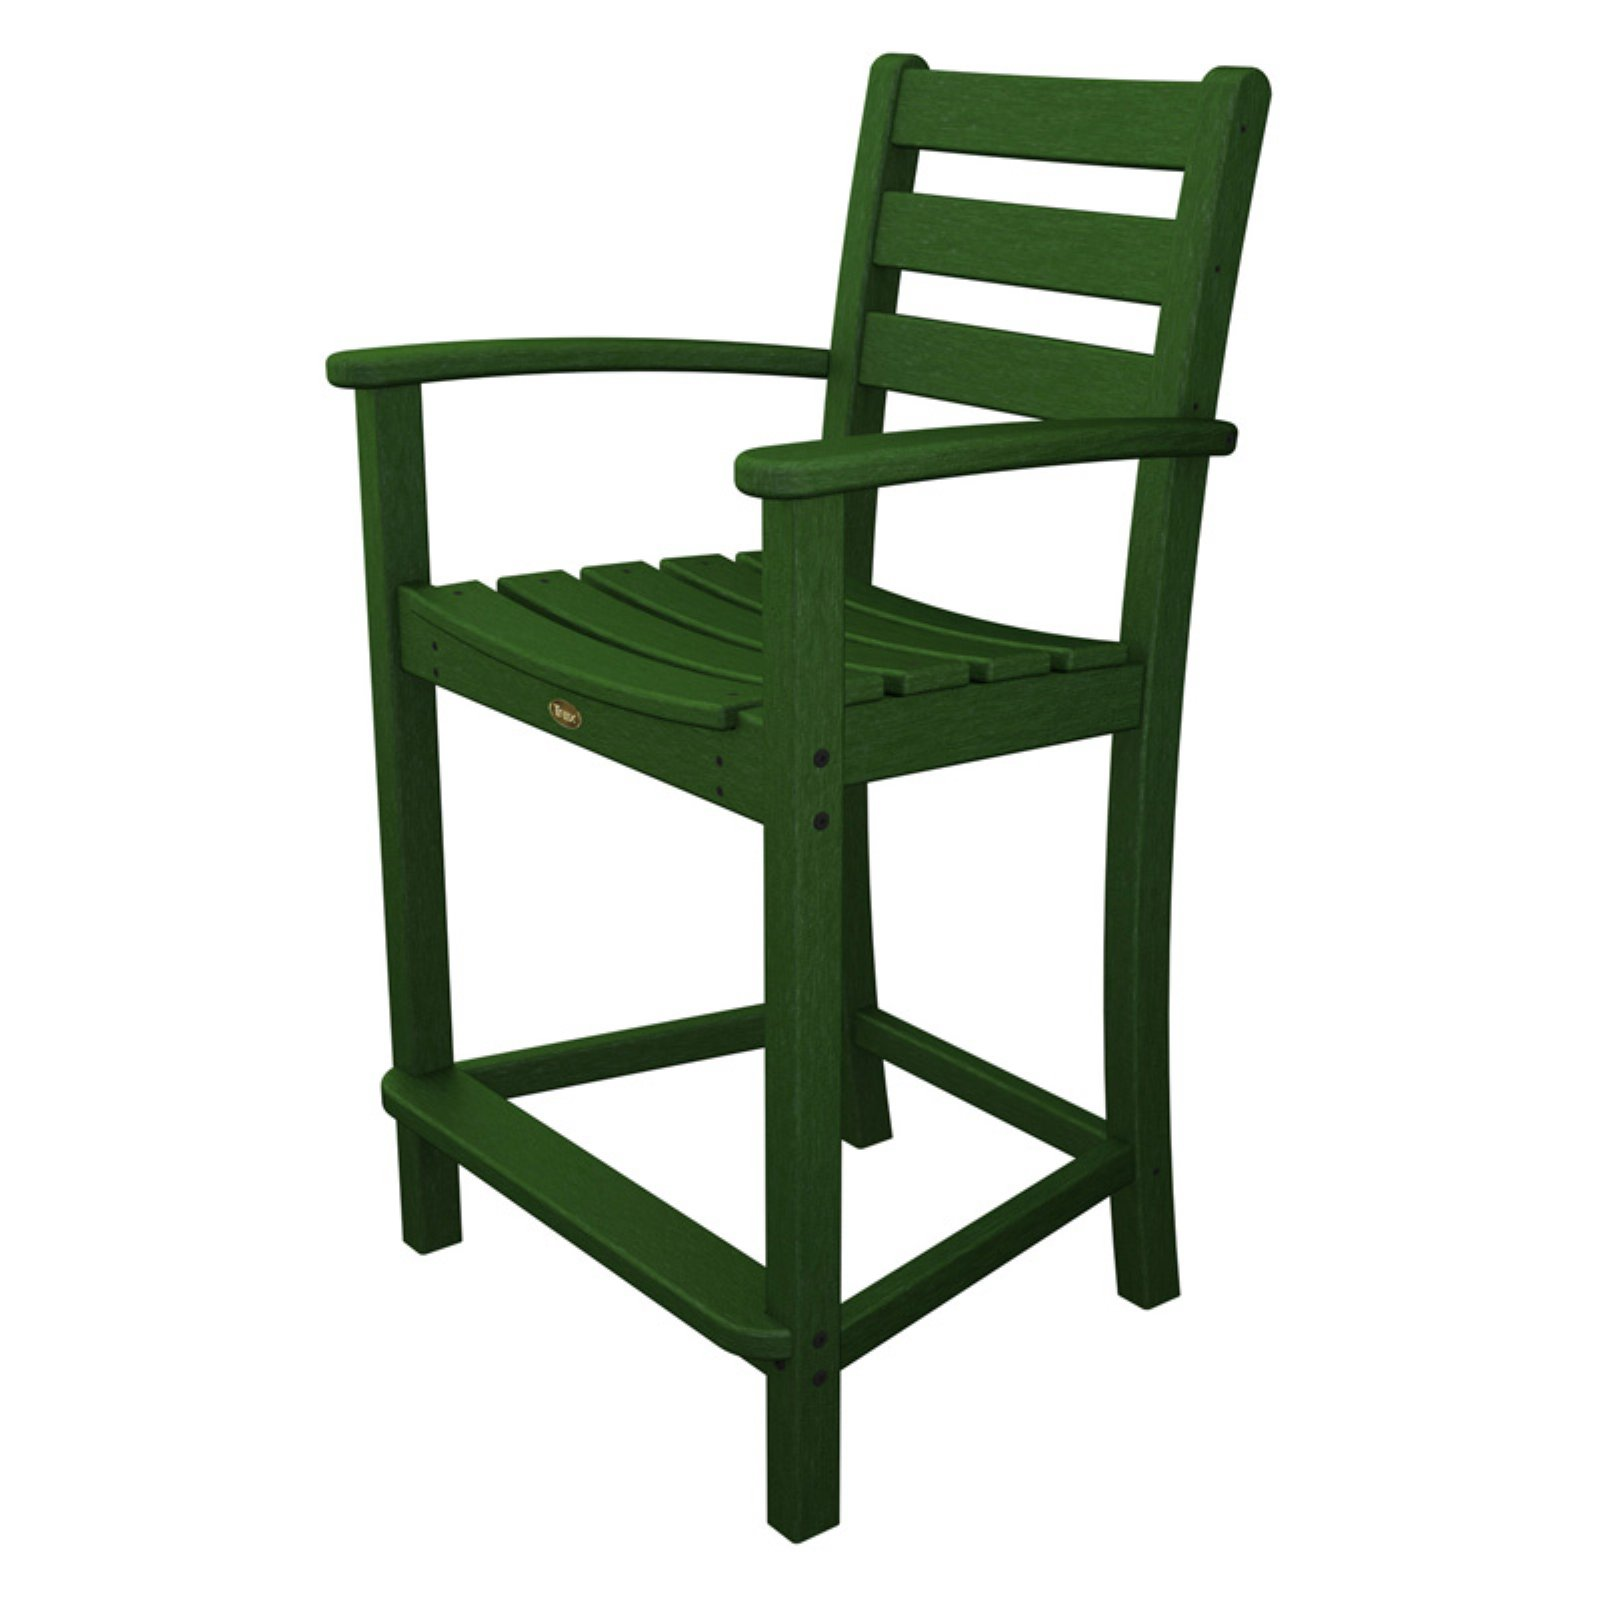 Trex Outdoor Furniture Recycled Plastic Monterey Bay Counter Height Arm  Chair